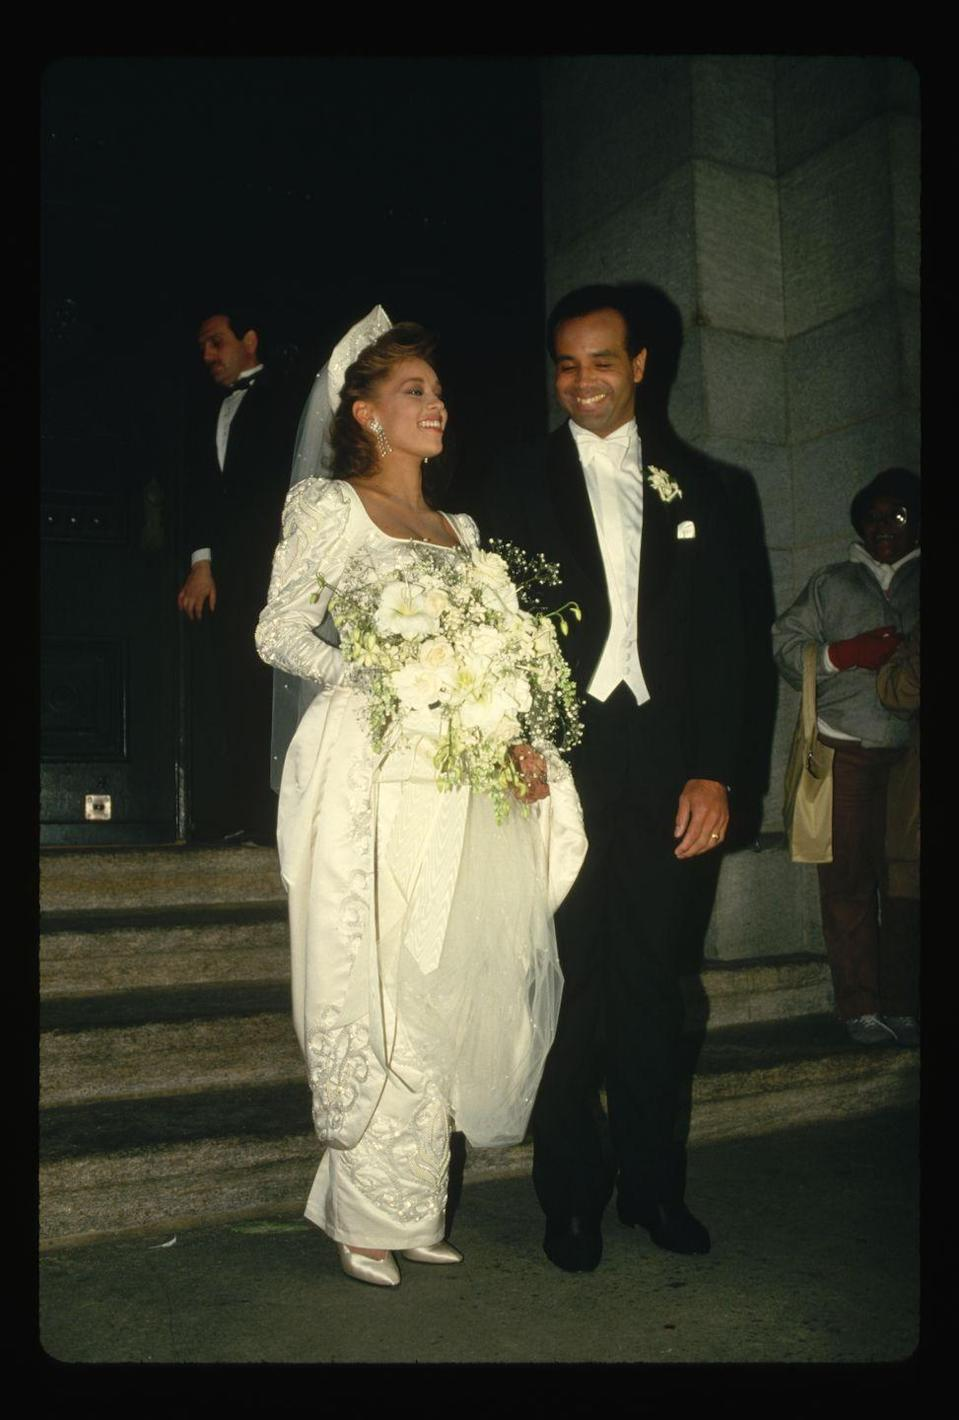 <p>Ramon Hervey II, a public relations specialist, was hired to save Vanessa Williams's career after publicized nude photos of her forced her to resign as Miss America in 1984. The two married on January 2, 1987. The couple had three children and divorced in 1997. Williams would remarry twice.</p>